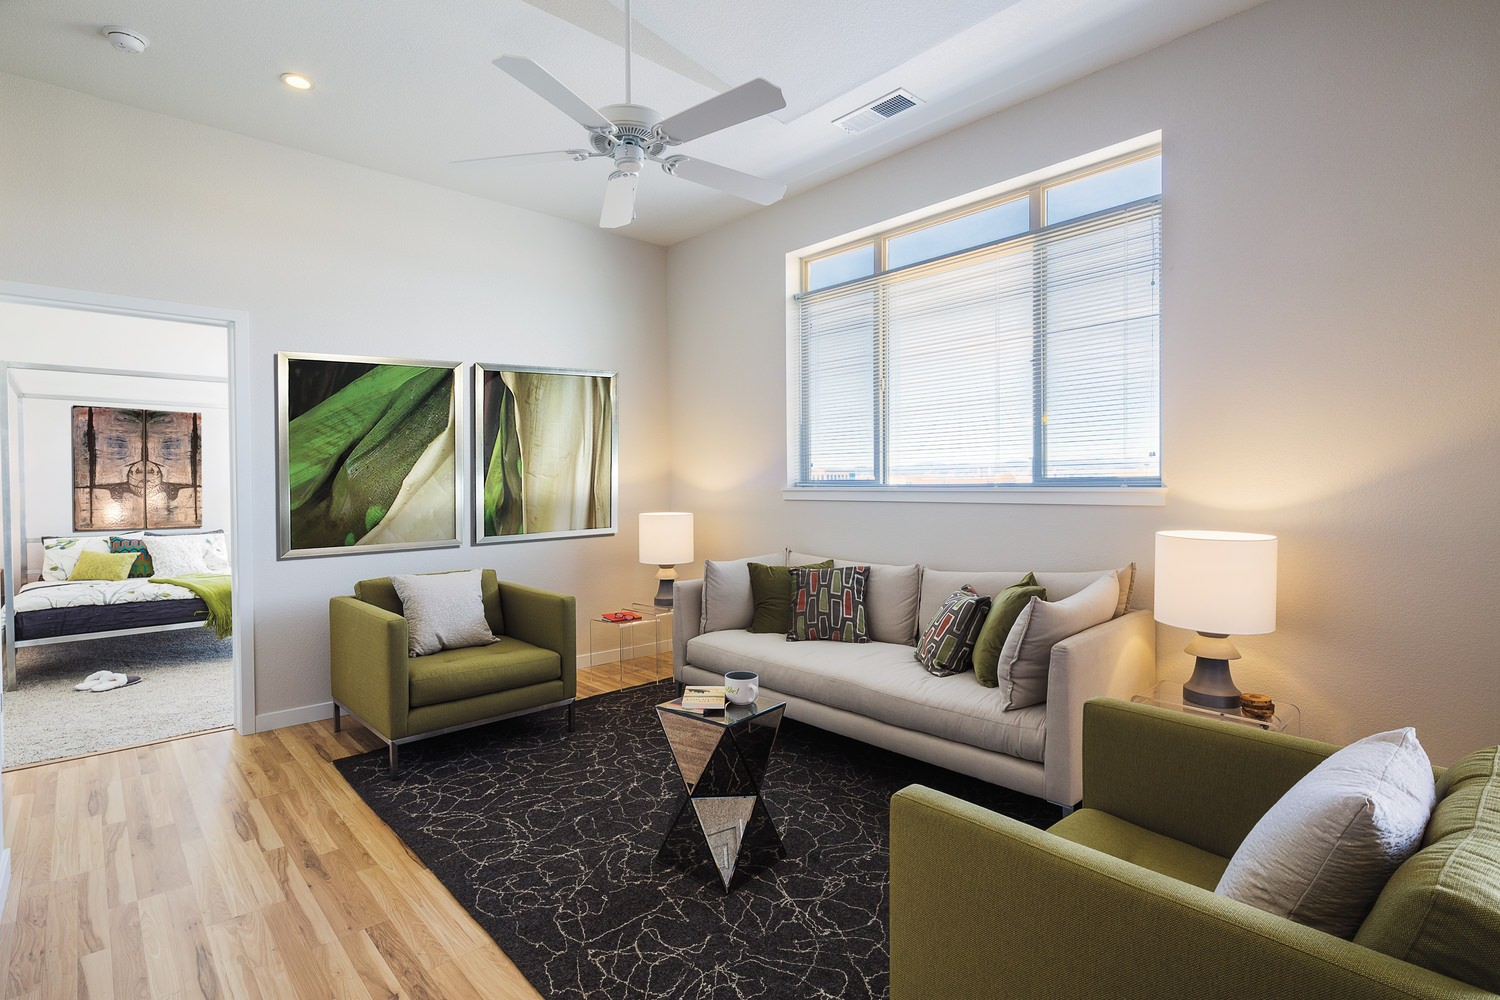 A living room that has green chairs and a grey couch in it and there is a bedroom off in the background.